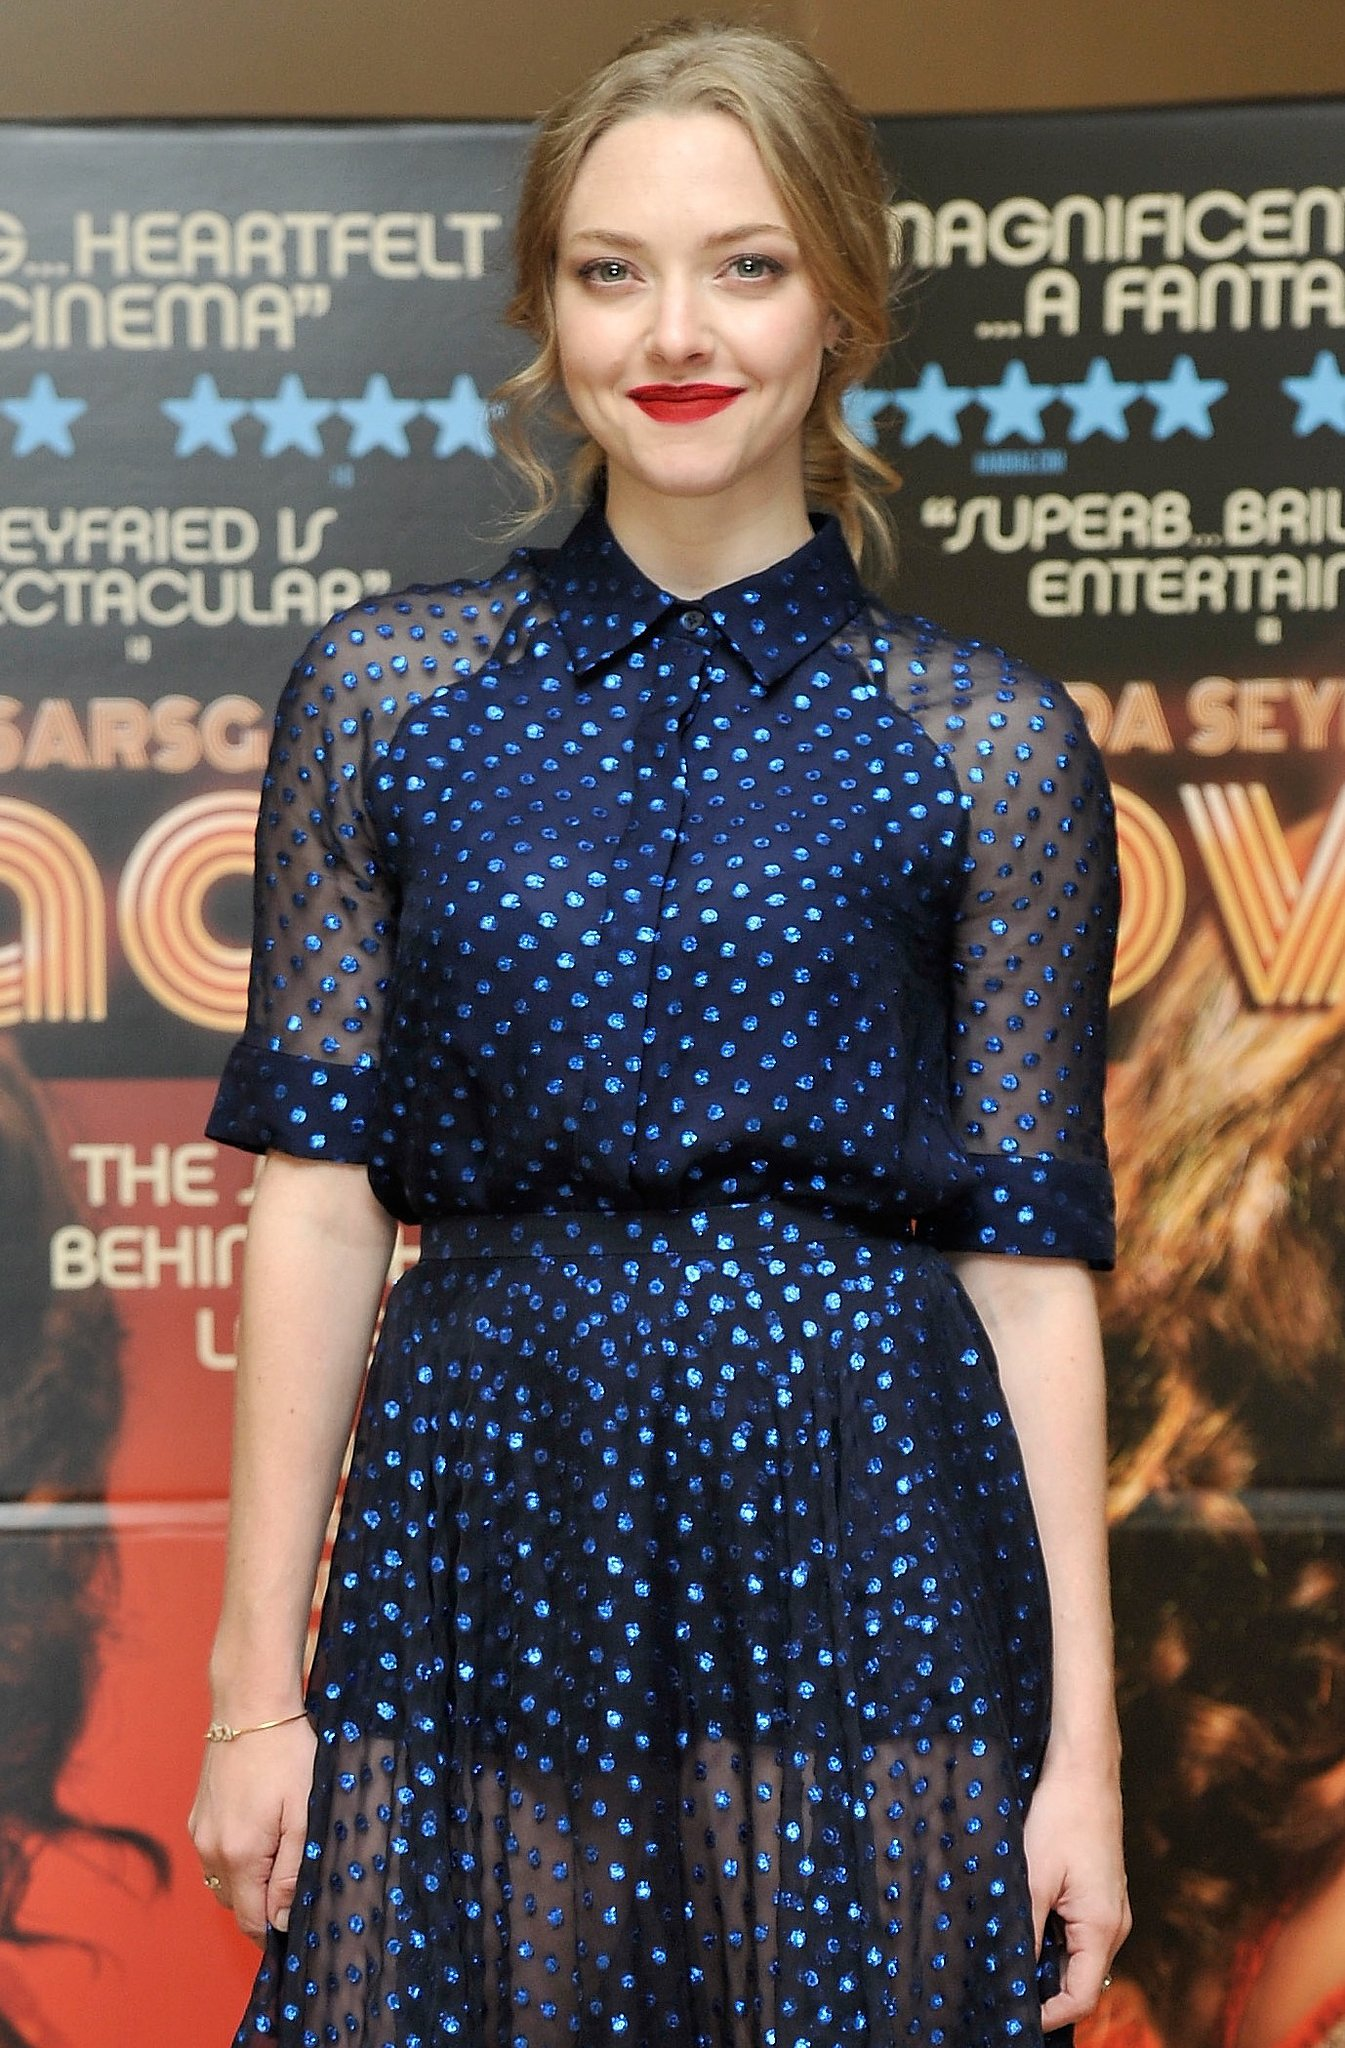 Speaking of Fathers and Daughters, Amanda Seyfried has been cast as Russell Crowe's daughter in the drama.